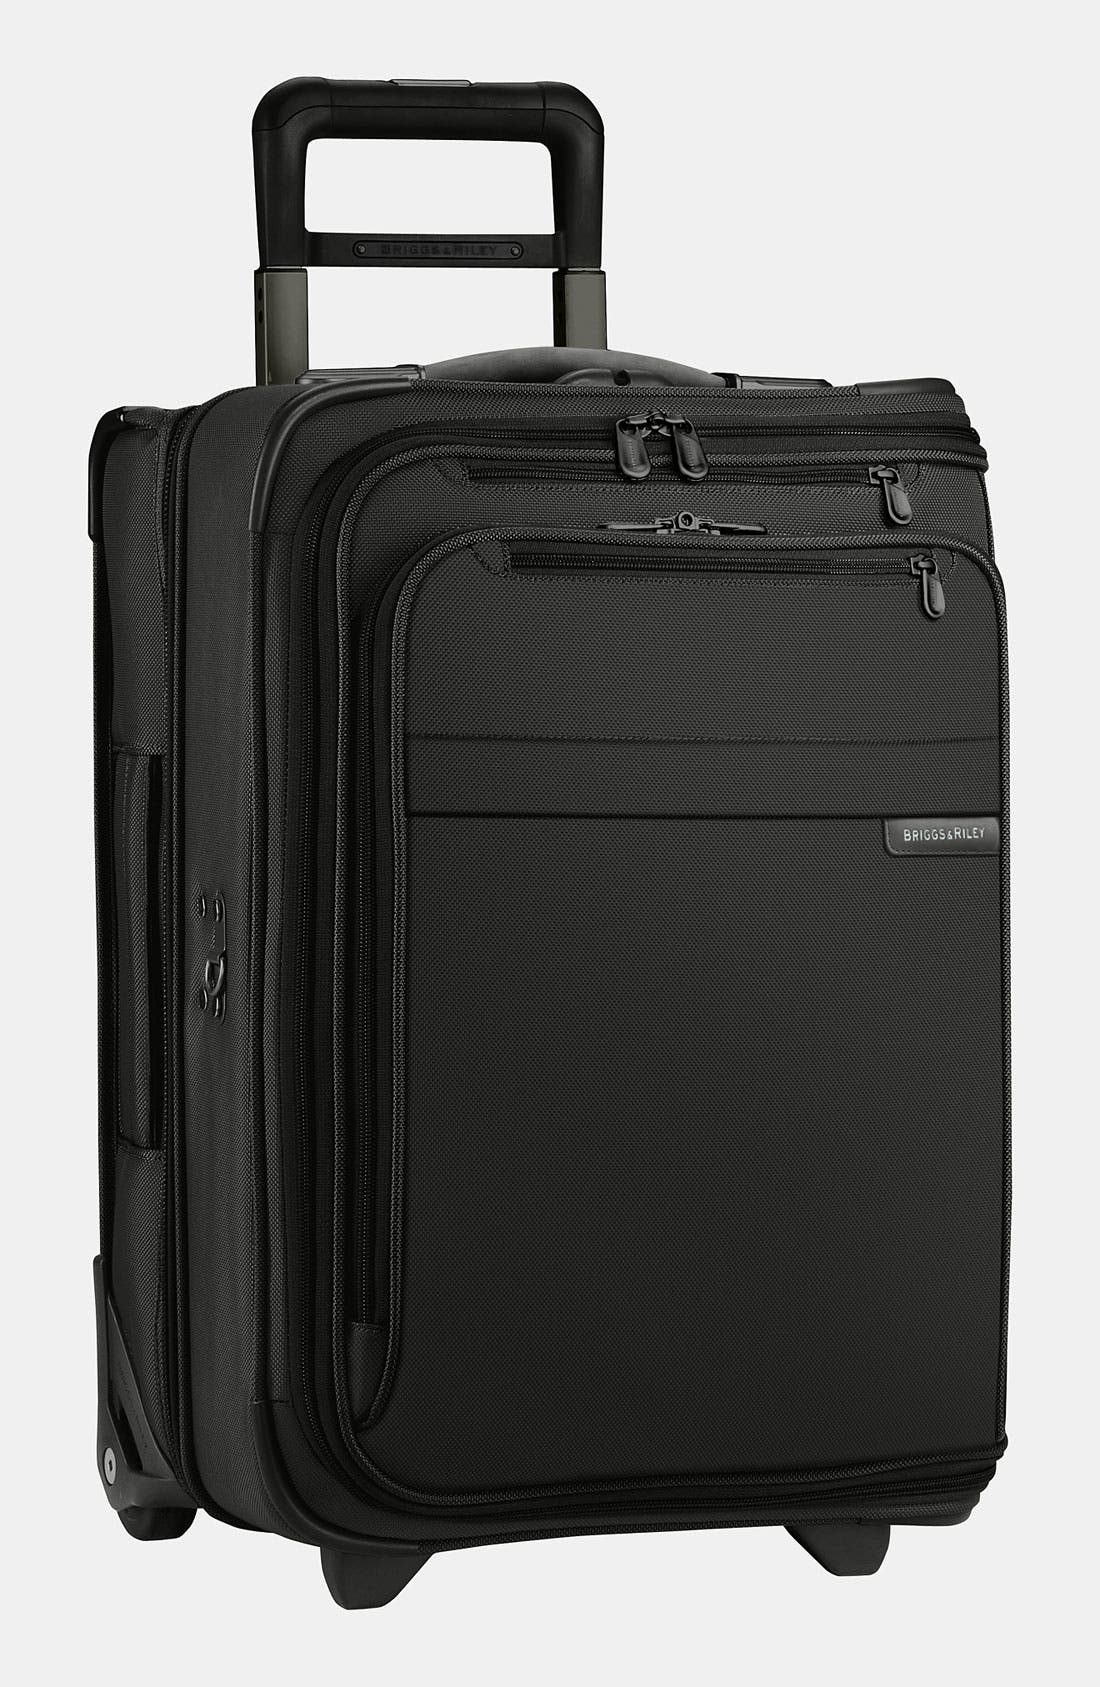 Main Image - Briggs & Riley 'Baseline - Domestic' Rolling Carry-On Garment Bag (22 Inch)